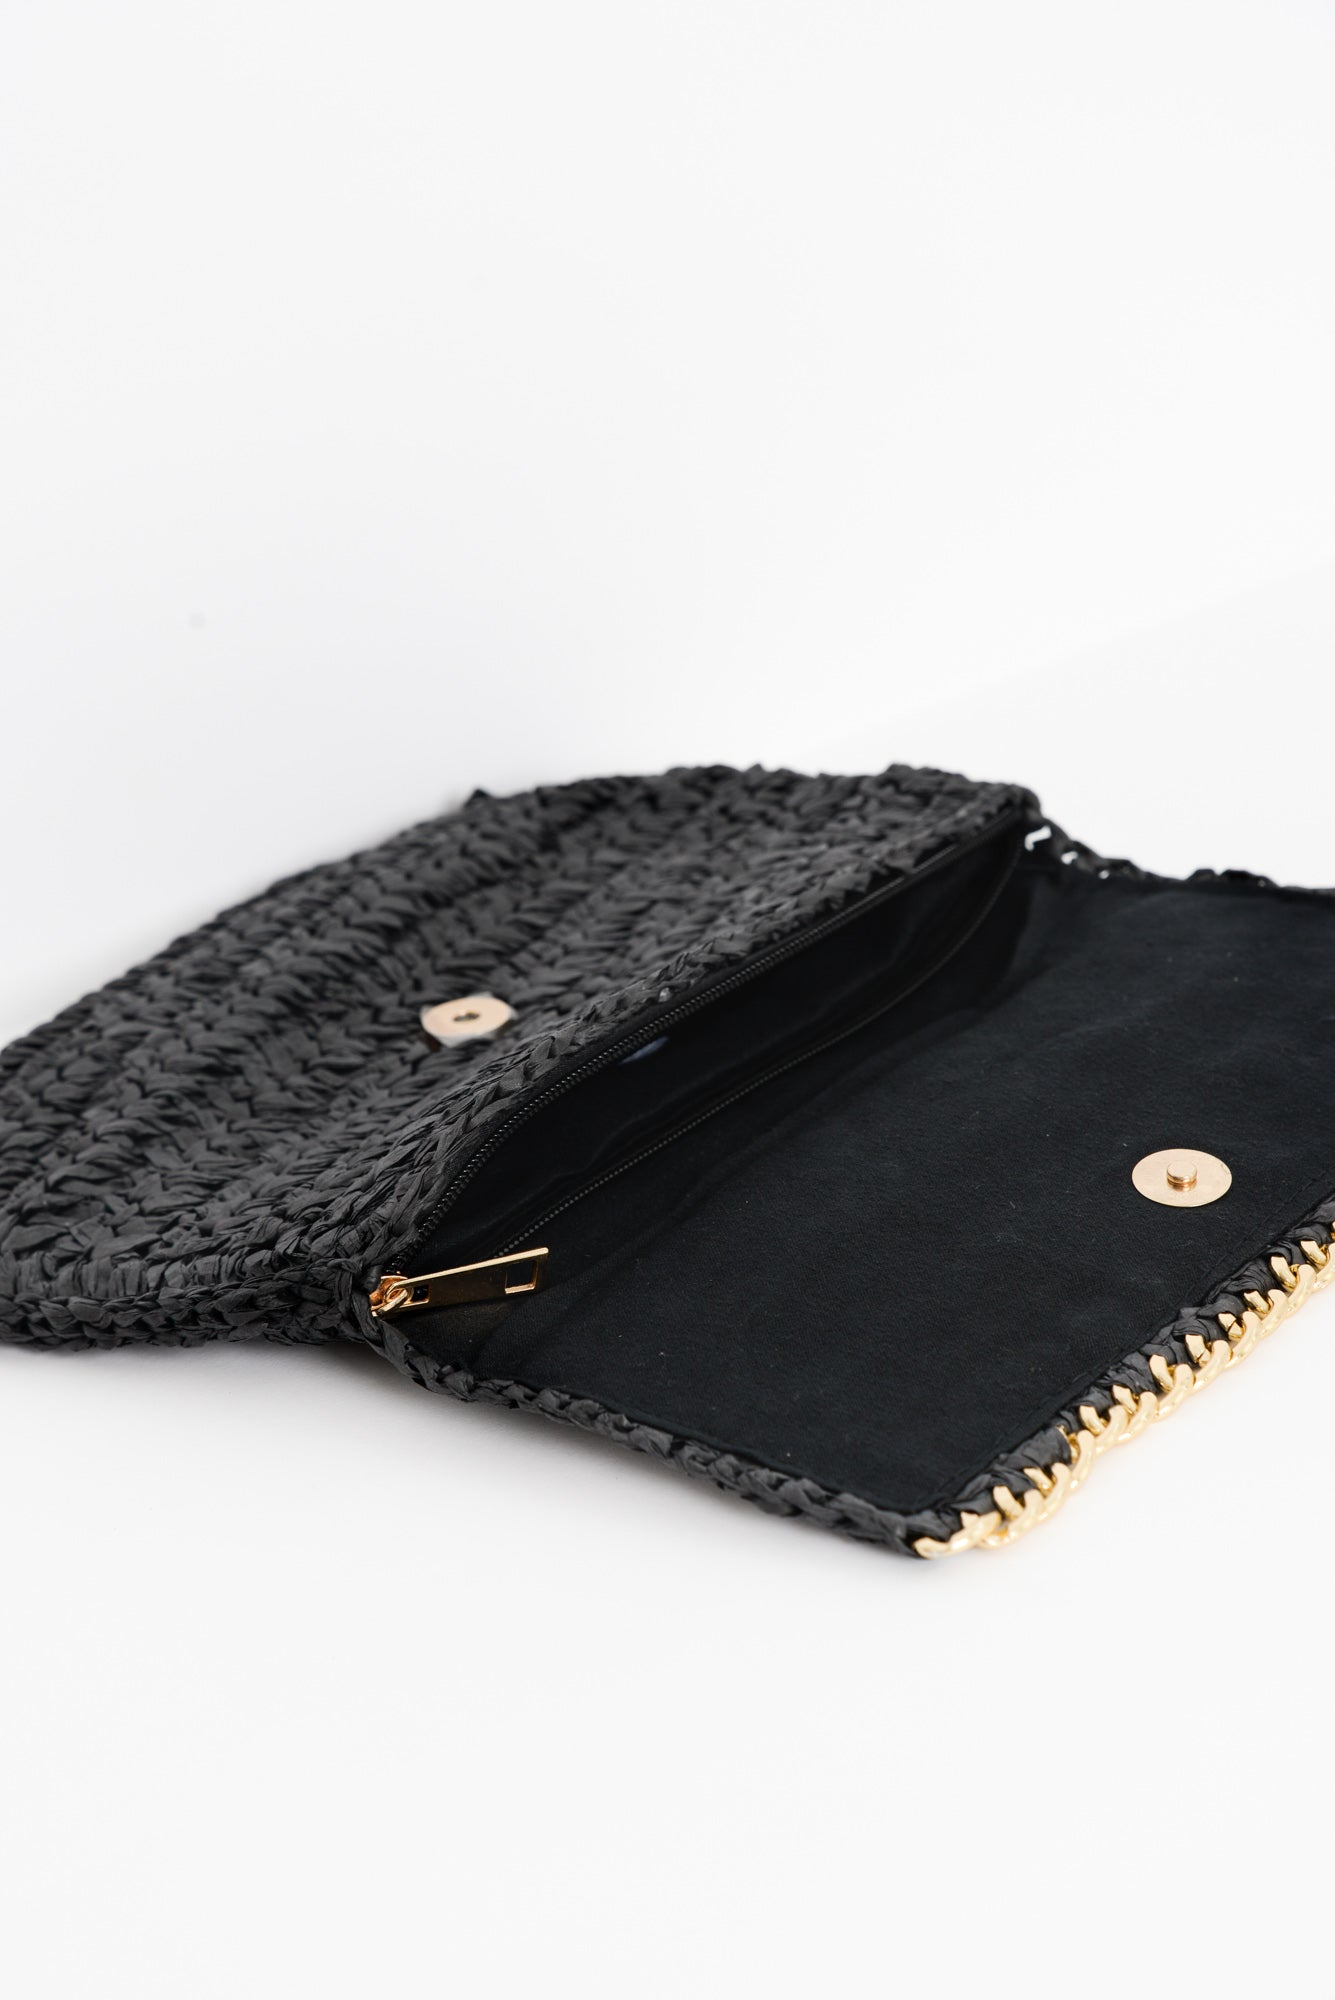 Santorini Black Straw Clutch